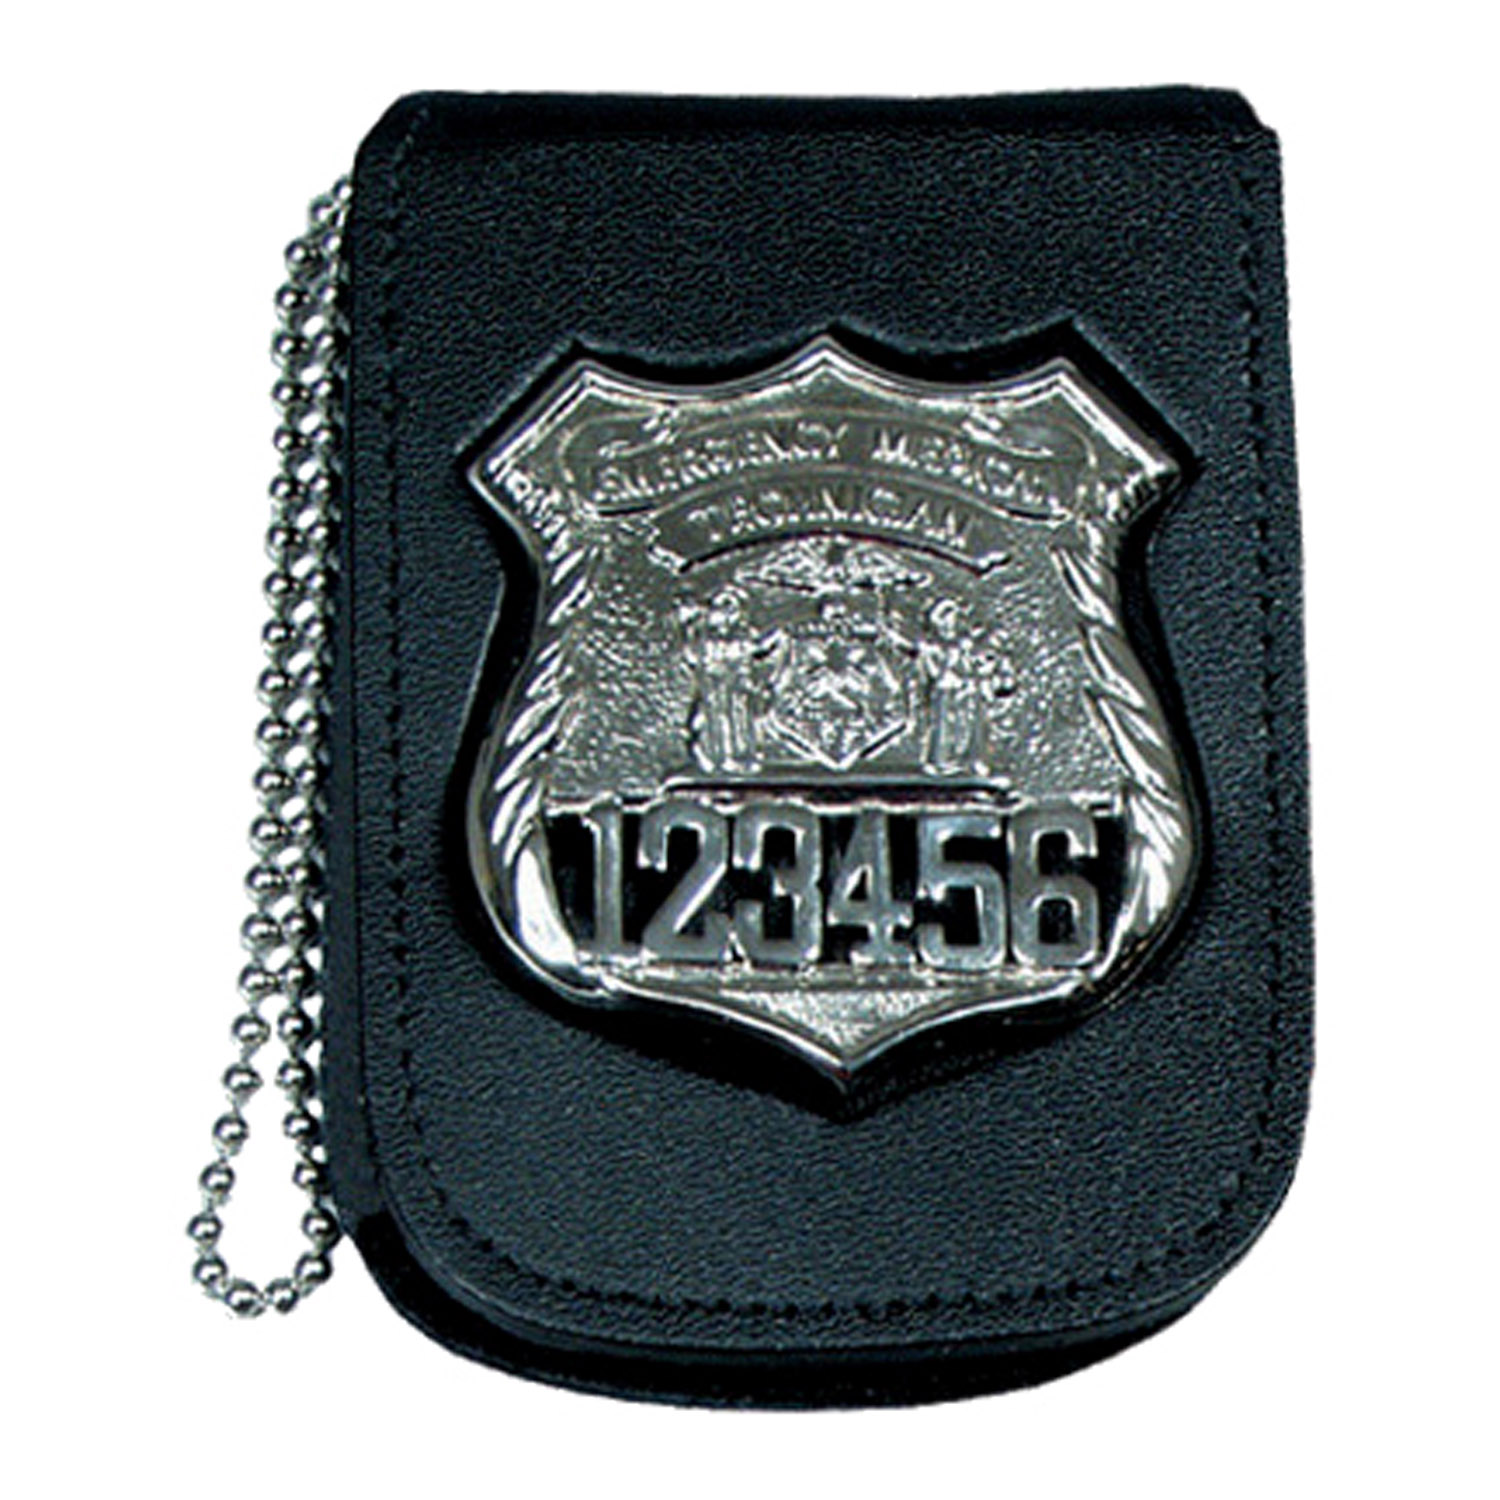 Smith & Warren Recessed Neck Badge and ID Shield Holder with